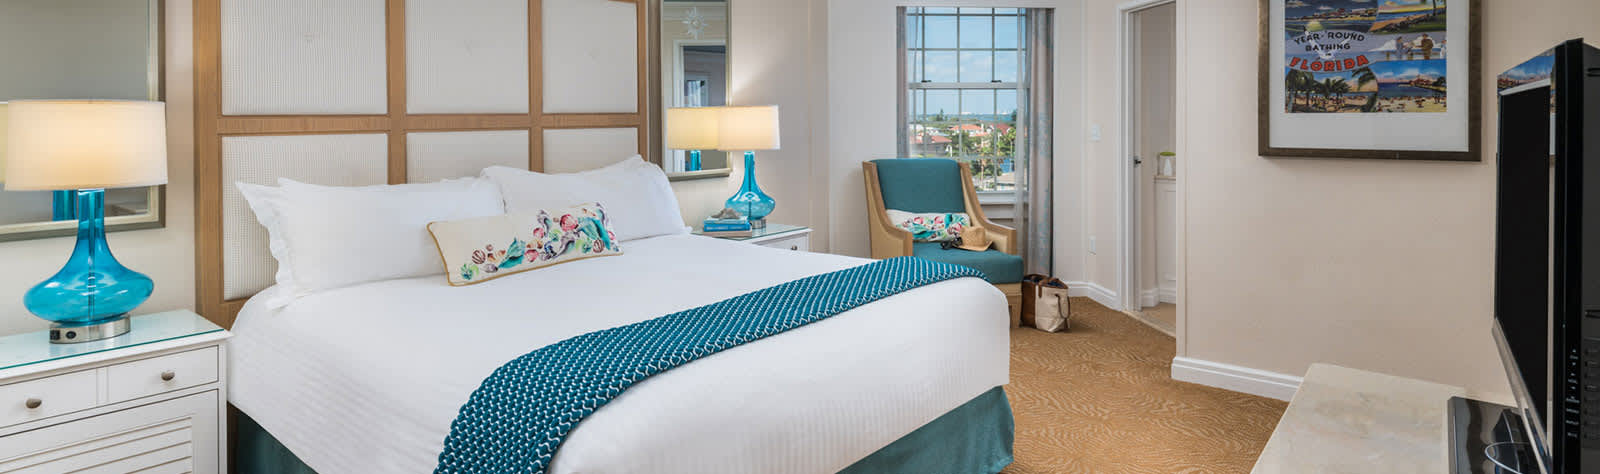 Cyber Sale at The Don CeSar